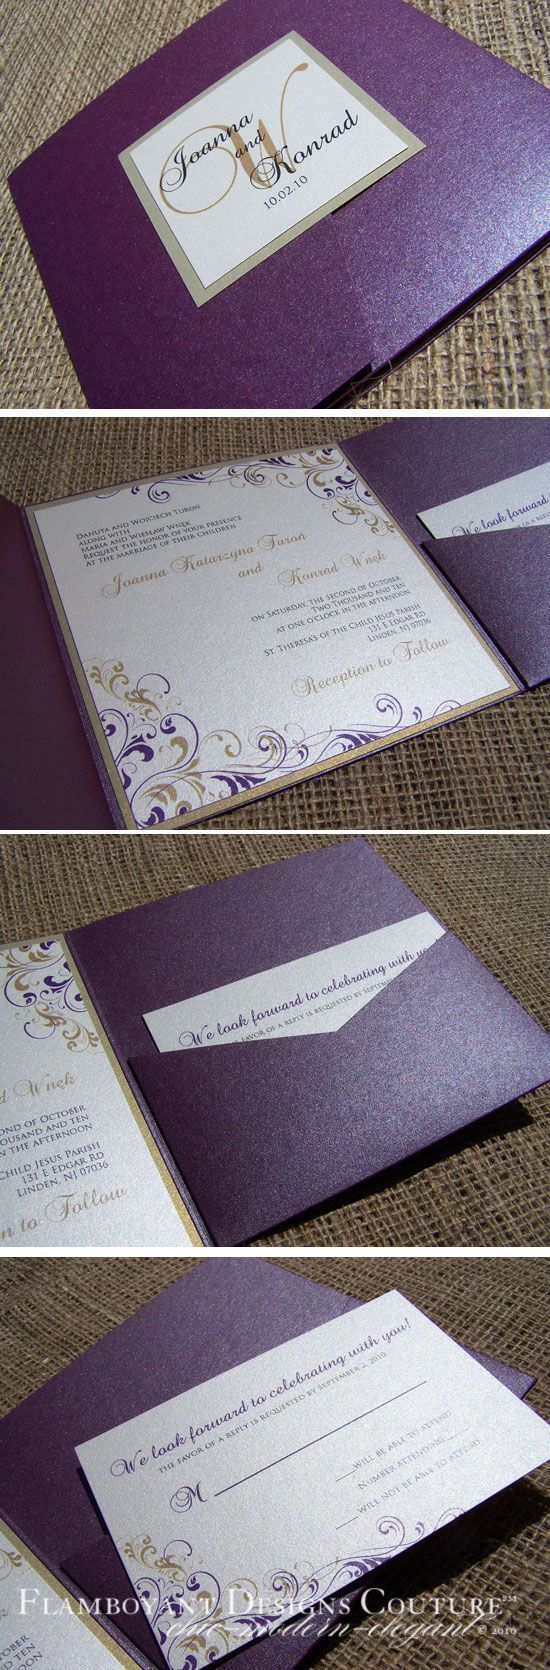 151 Best Wedding Invitations Images On Pinterest Invitations Card